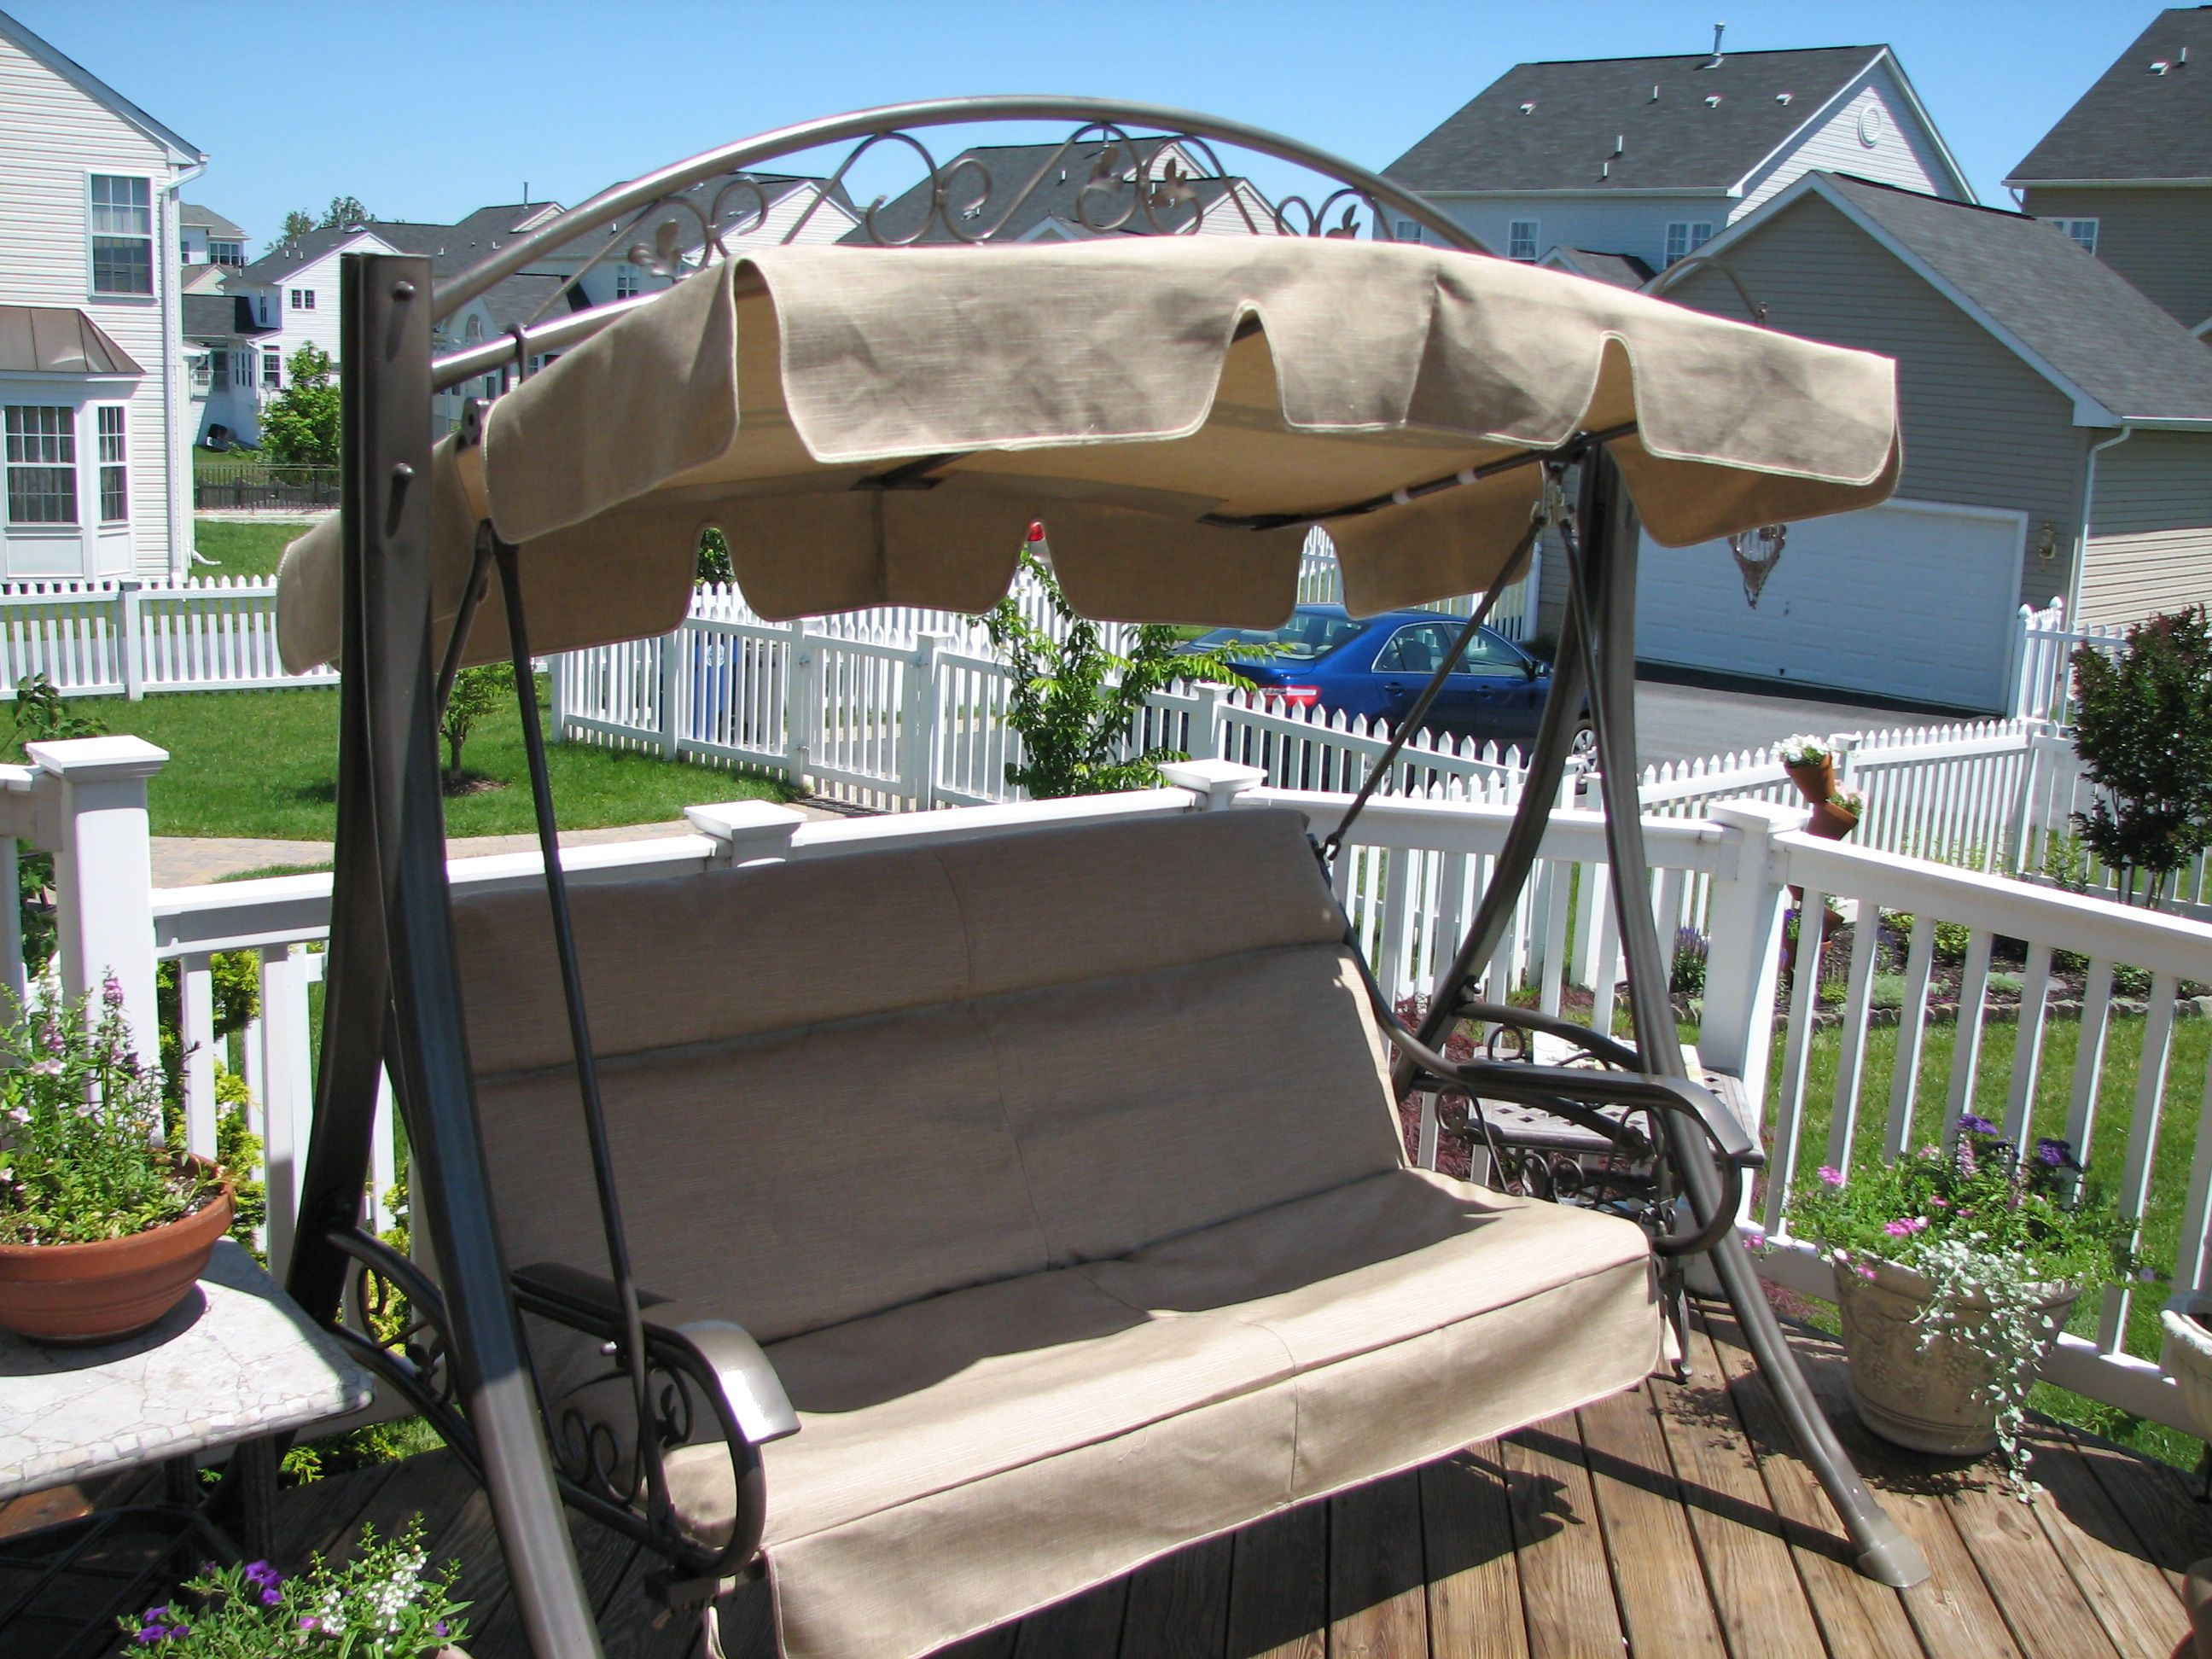 Our canopy and cushion replacements are custom made to fit your patio swing. Contact Swing Cushion Covers and More to order or learn more. : costco canopy replacement - memphite.com